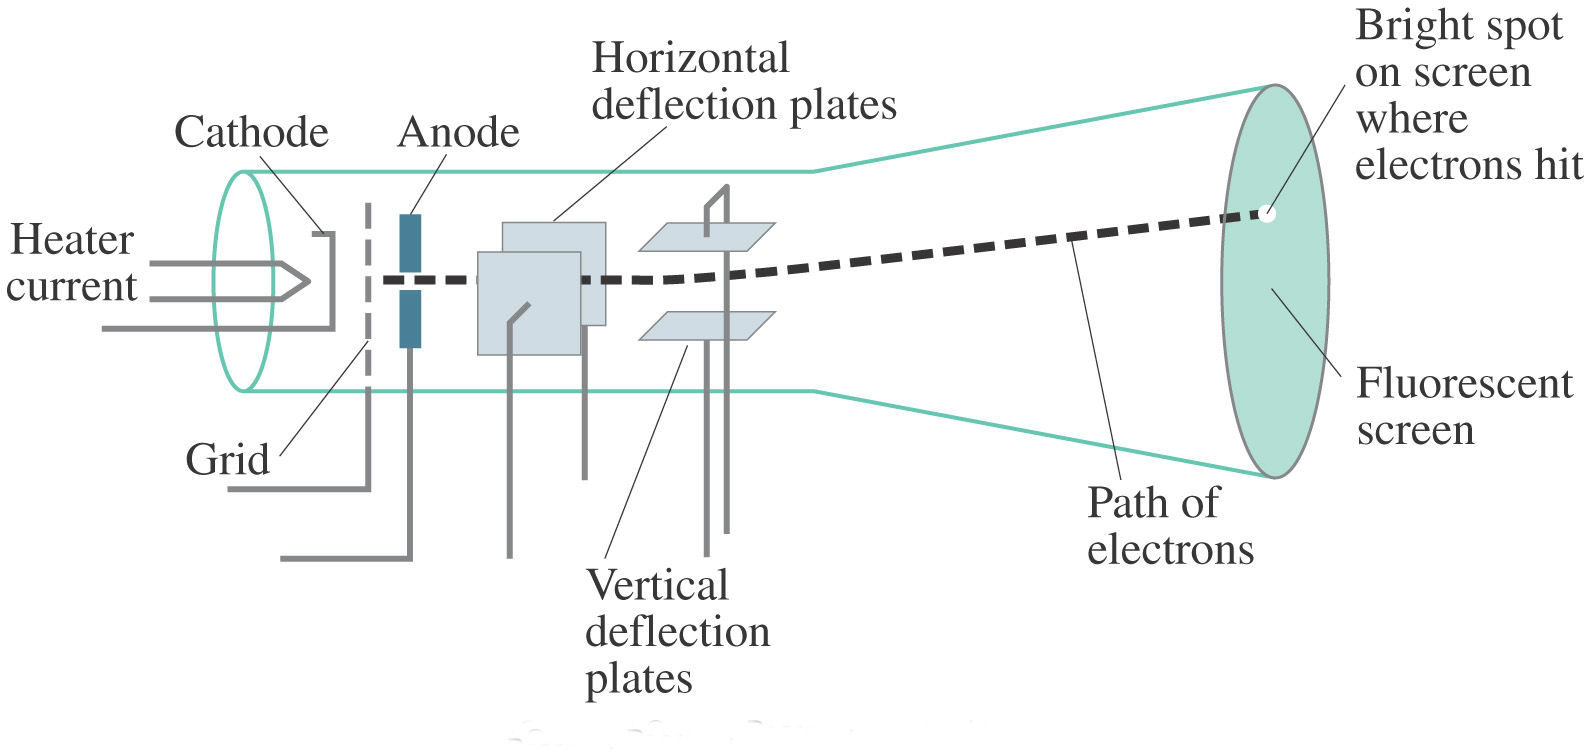 hight resolution of cathode ray tube crt science facts cathode ray tube diagram cathode ray tube diagram